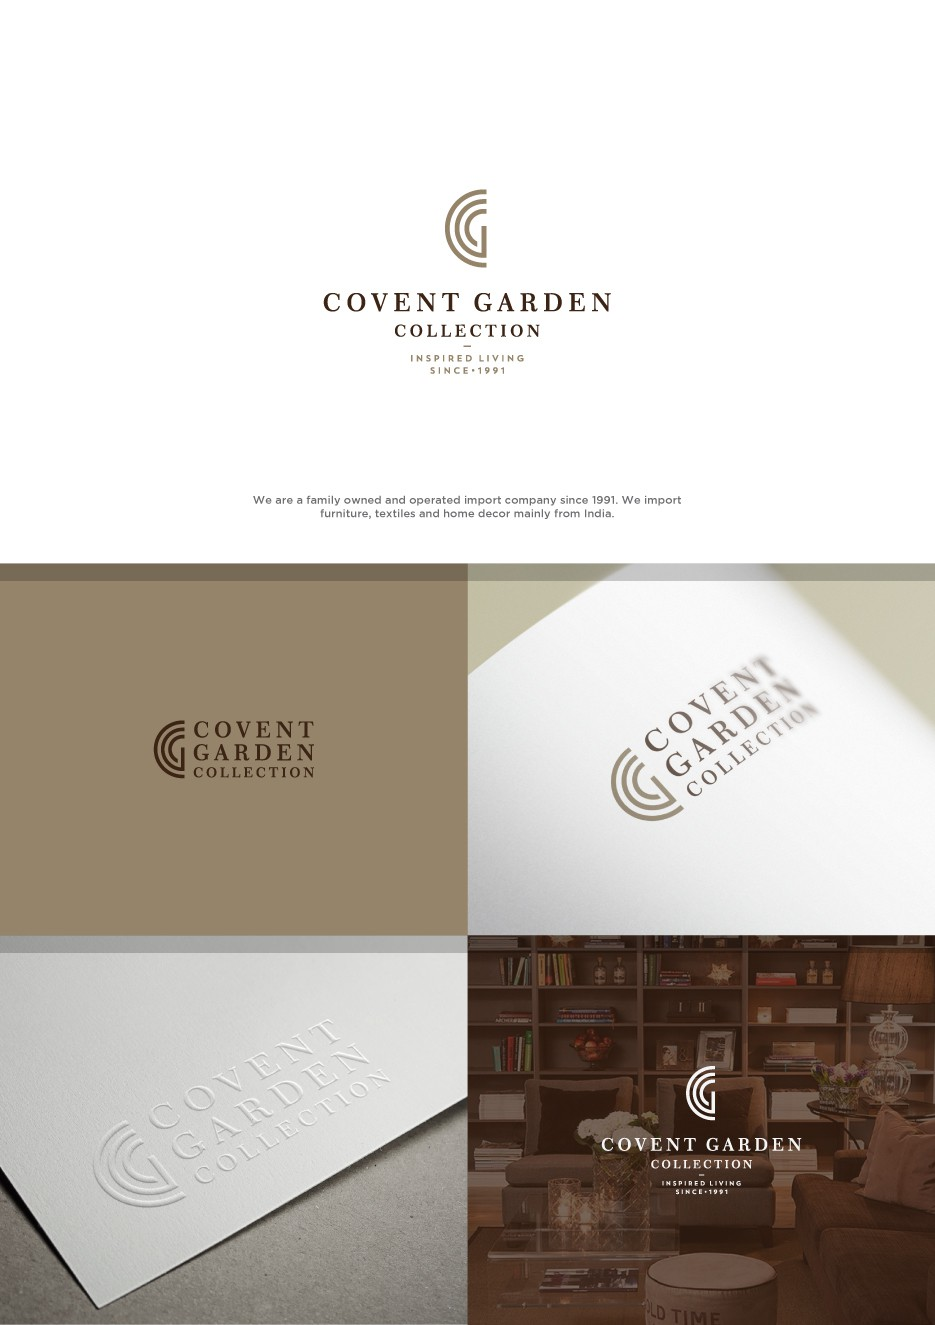 New stunning logo and business card for Covent Garden Collection AS